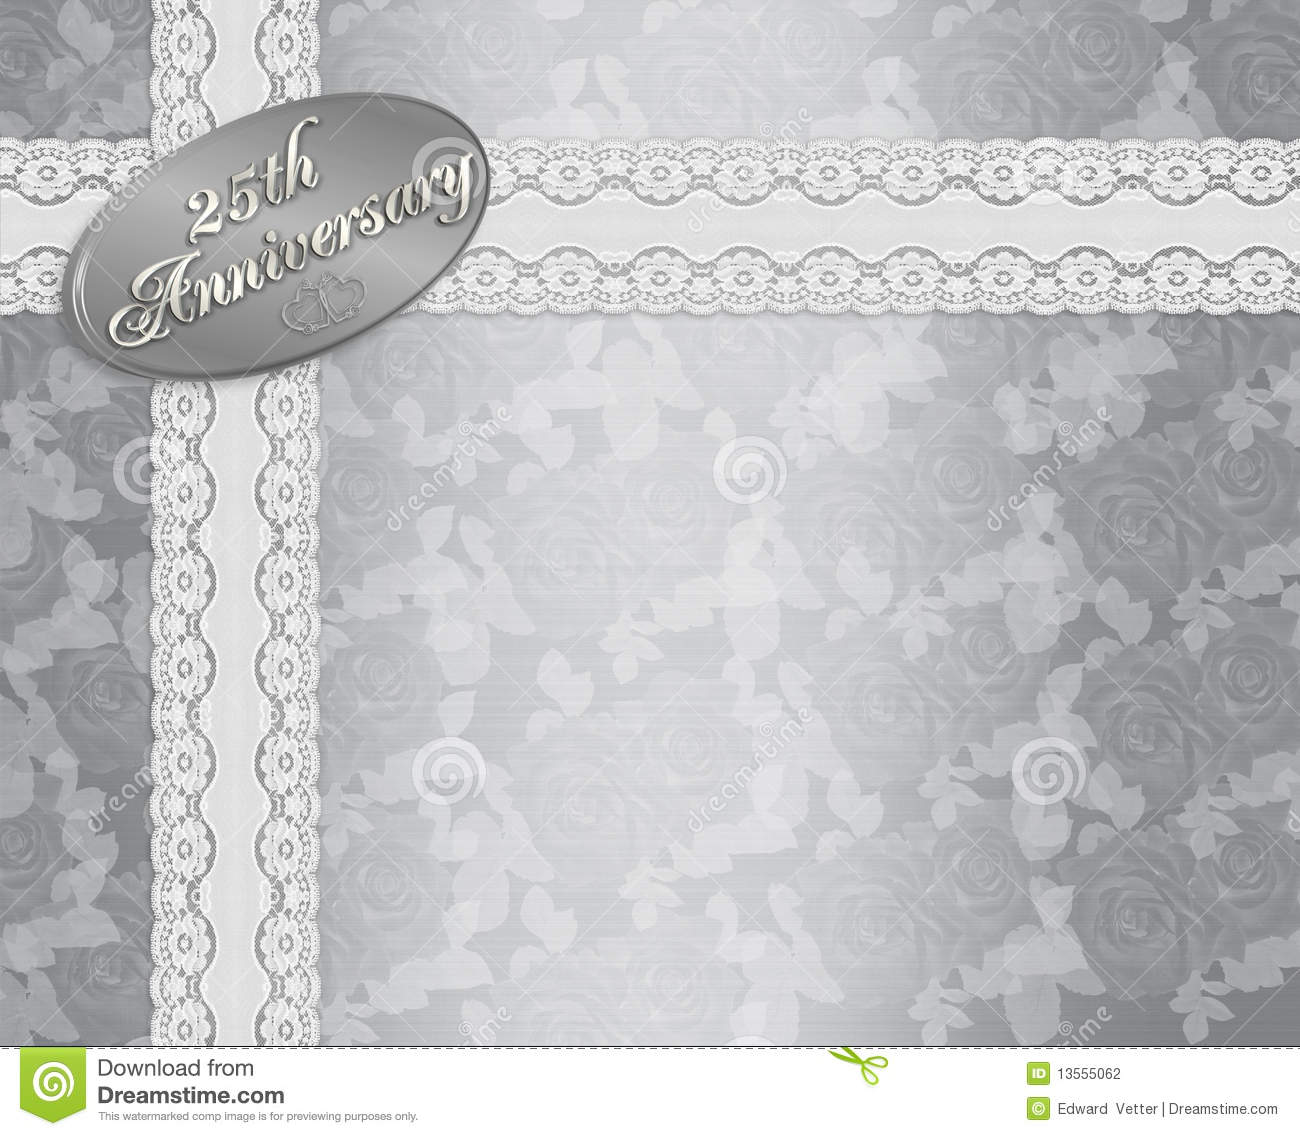 Backdrops Silver Wedding Invitations: 25th Wedding Anniversary Invitation Stock Illustration